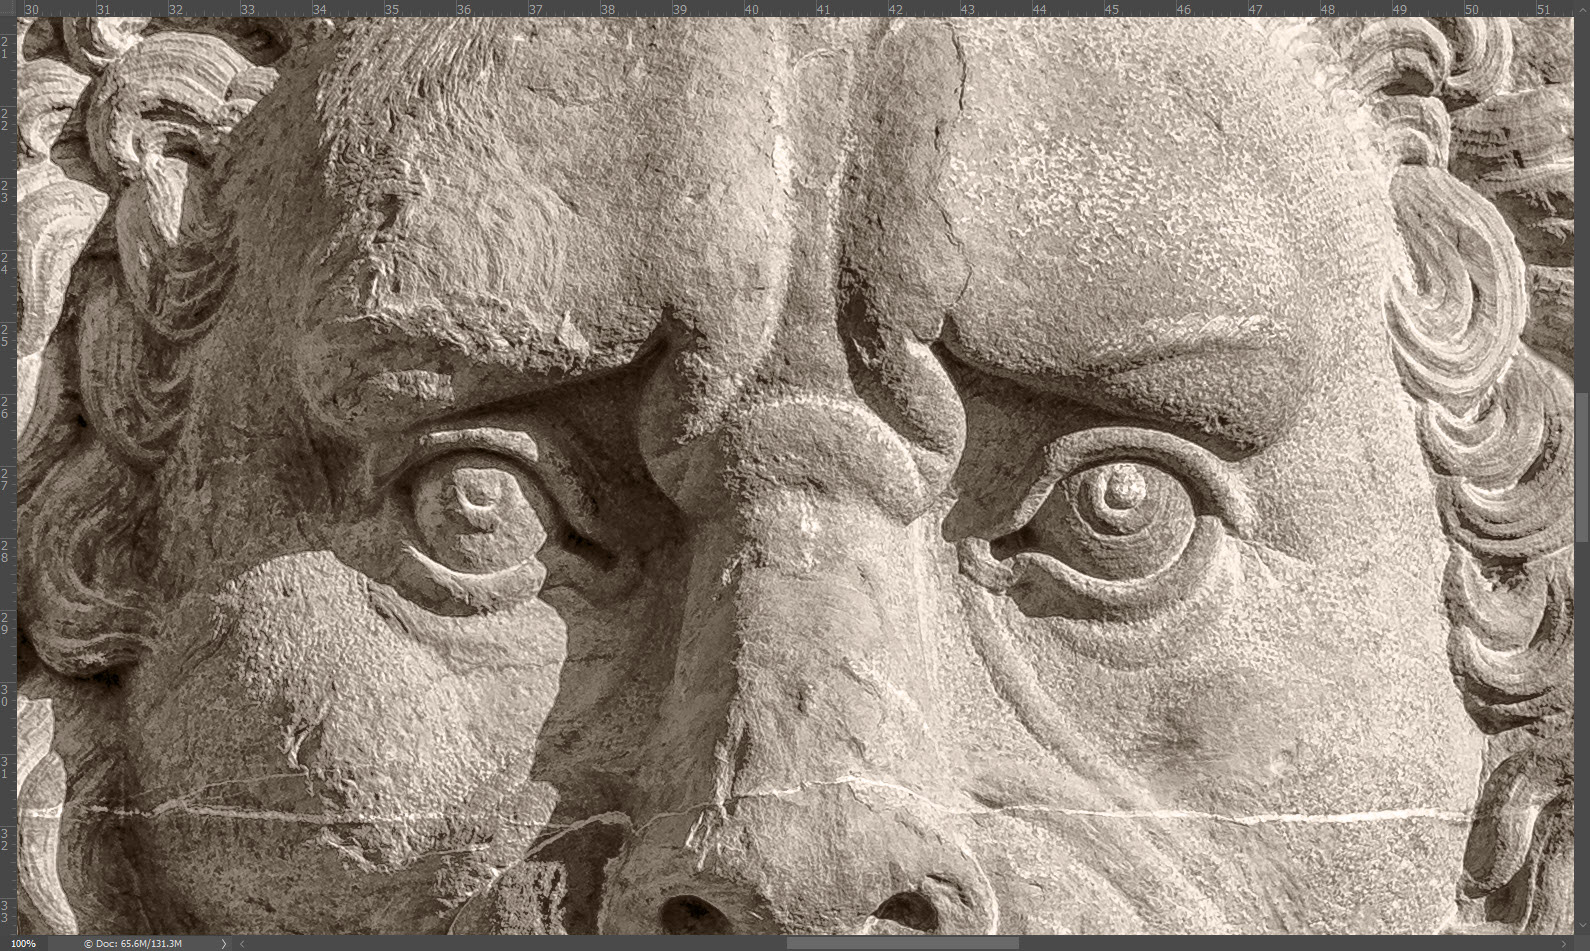 Sepia Tone Effect in Photoshop - Simple